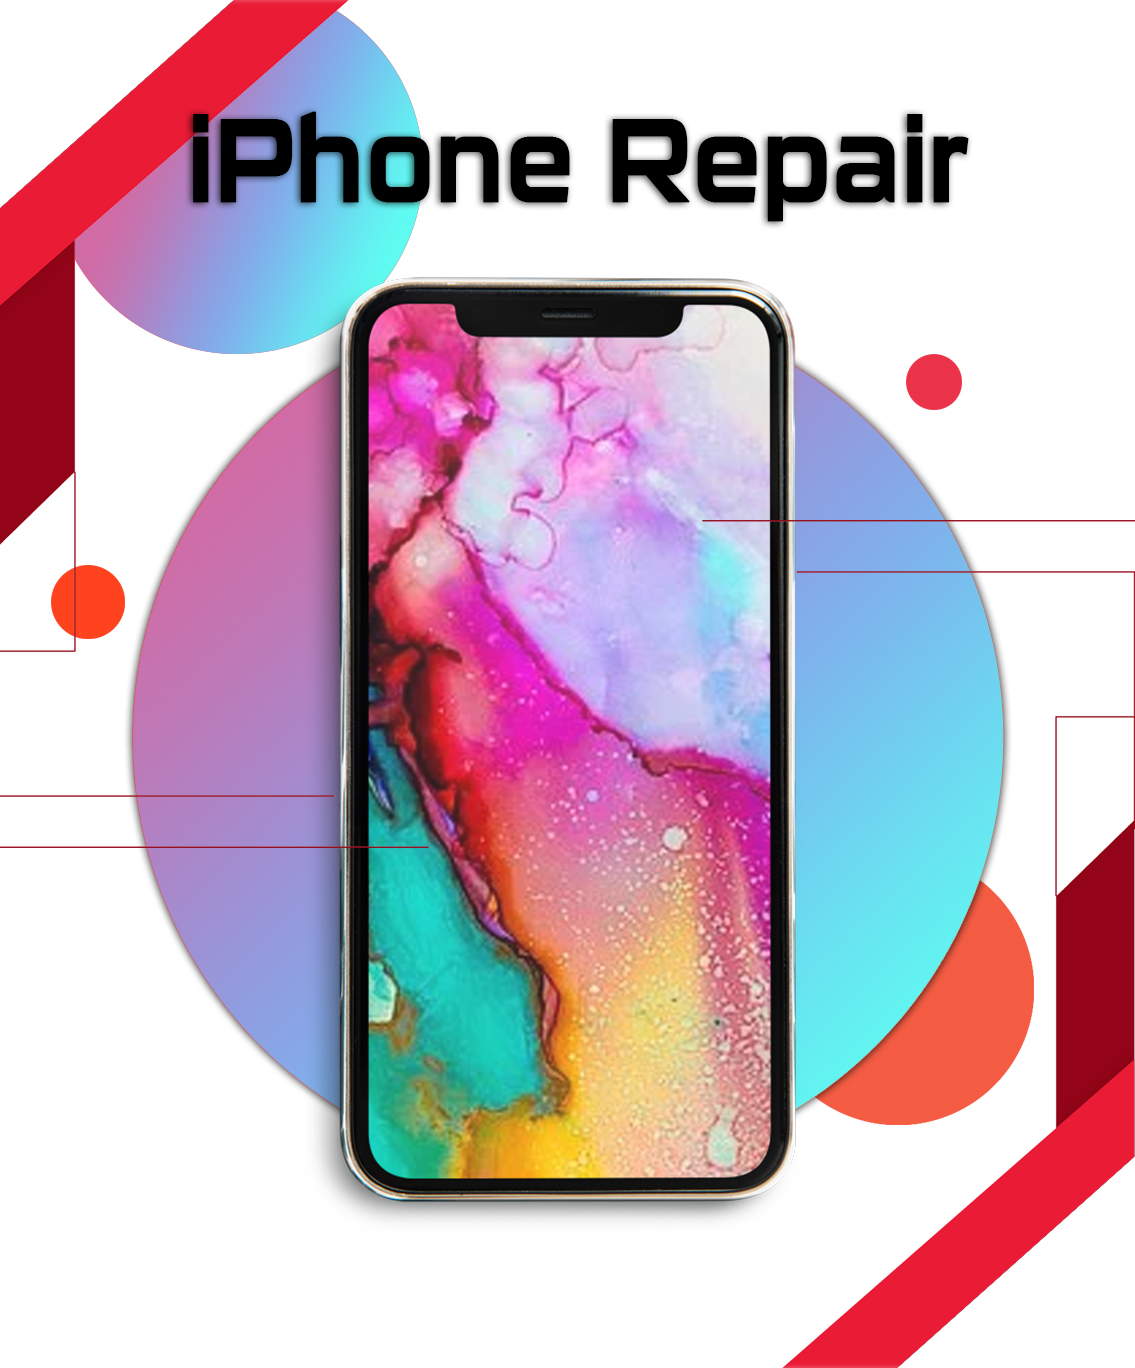 iPhone Repair in Vancouver